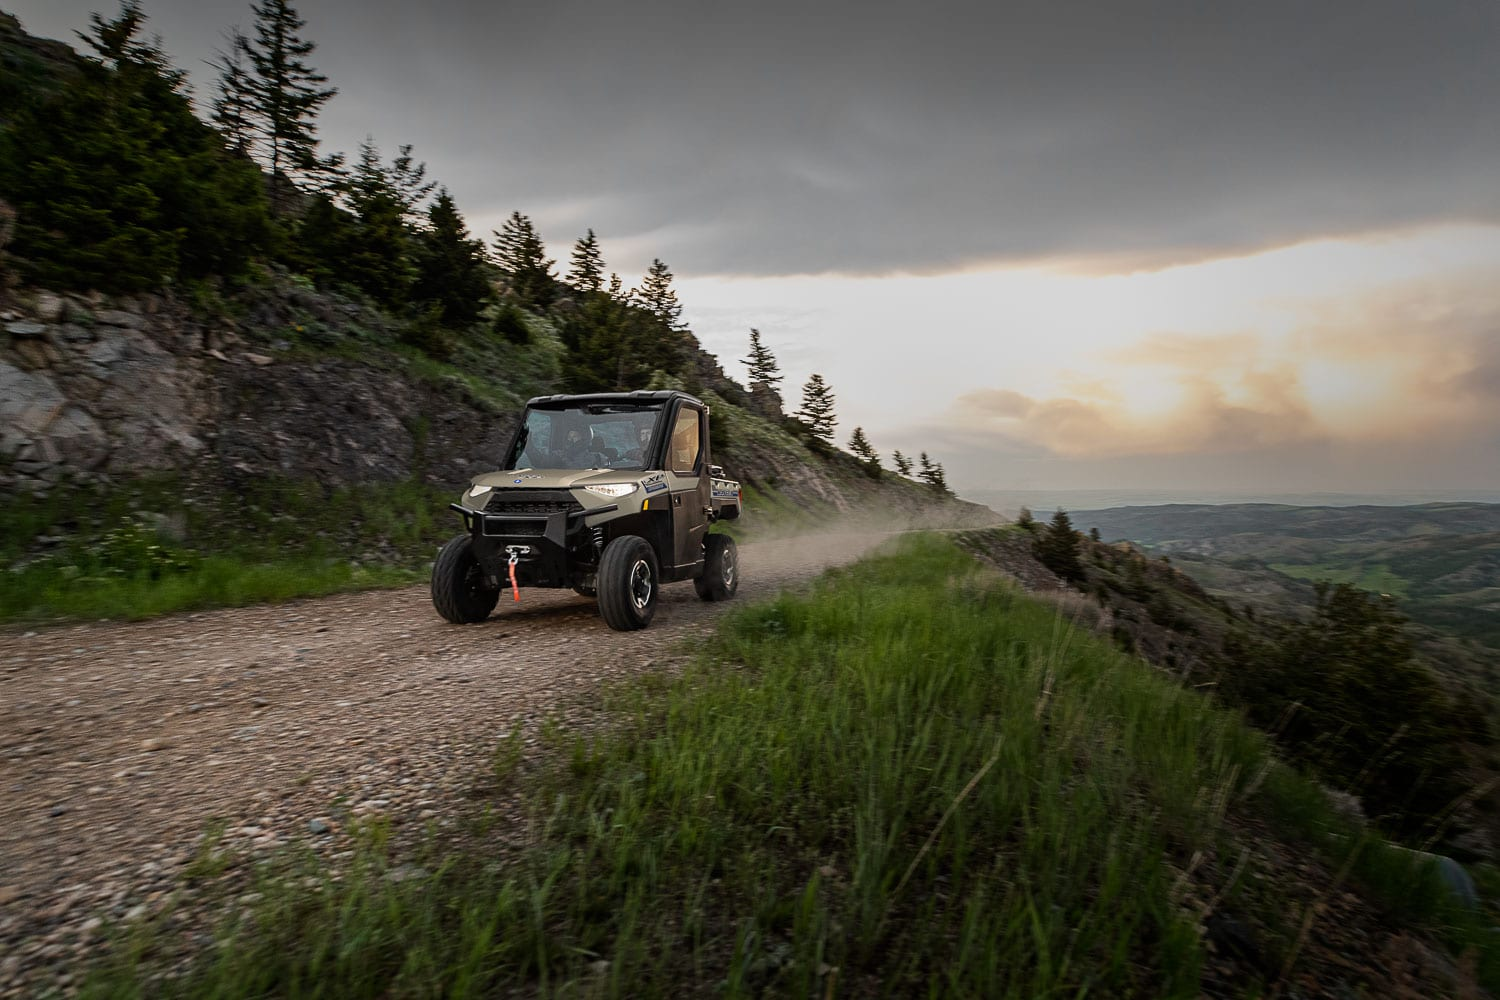 2020 Polaris Ranger NorthStar Premium and Ultimate Models